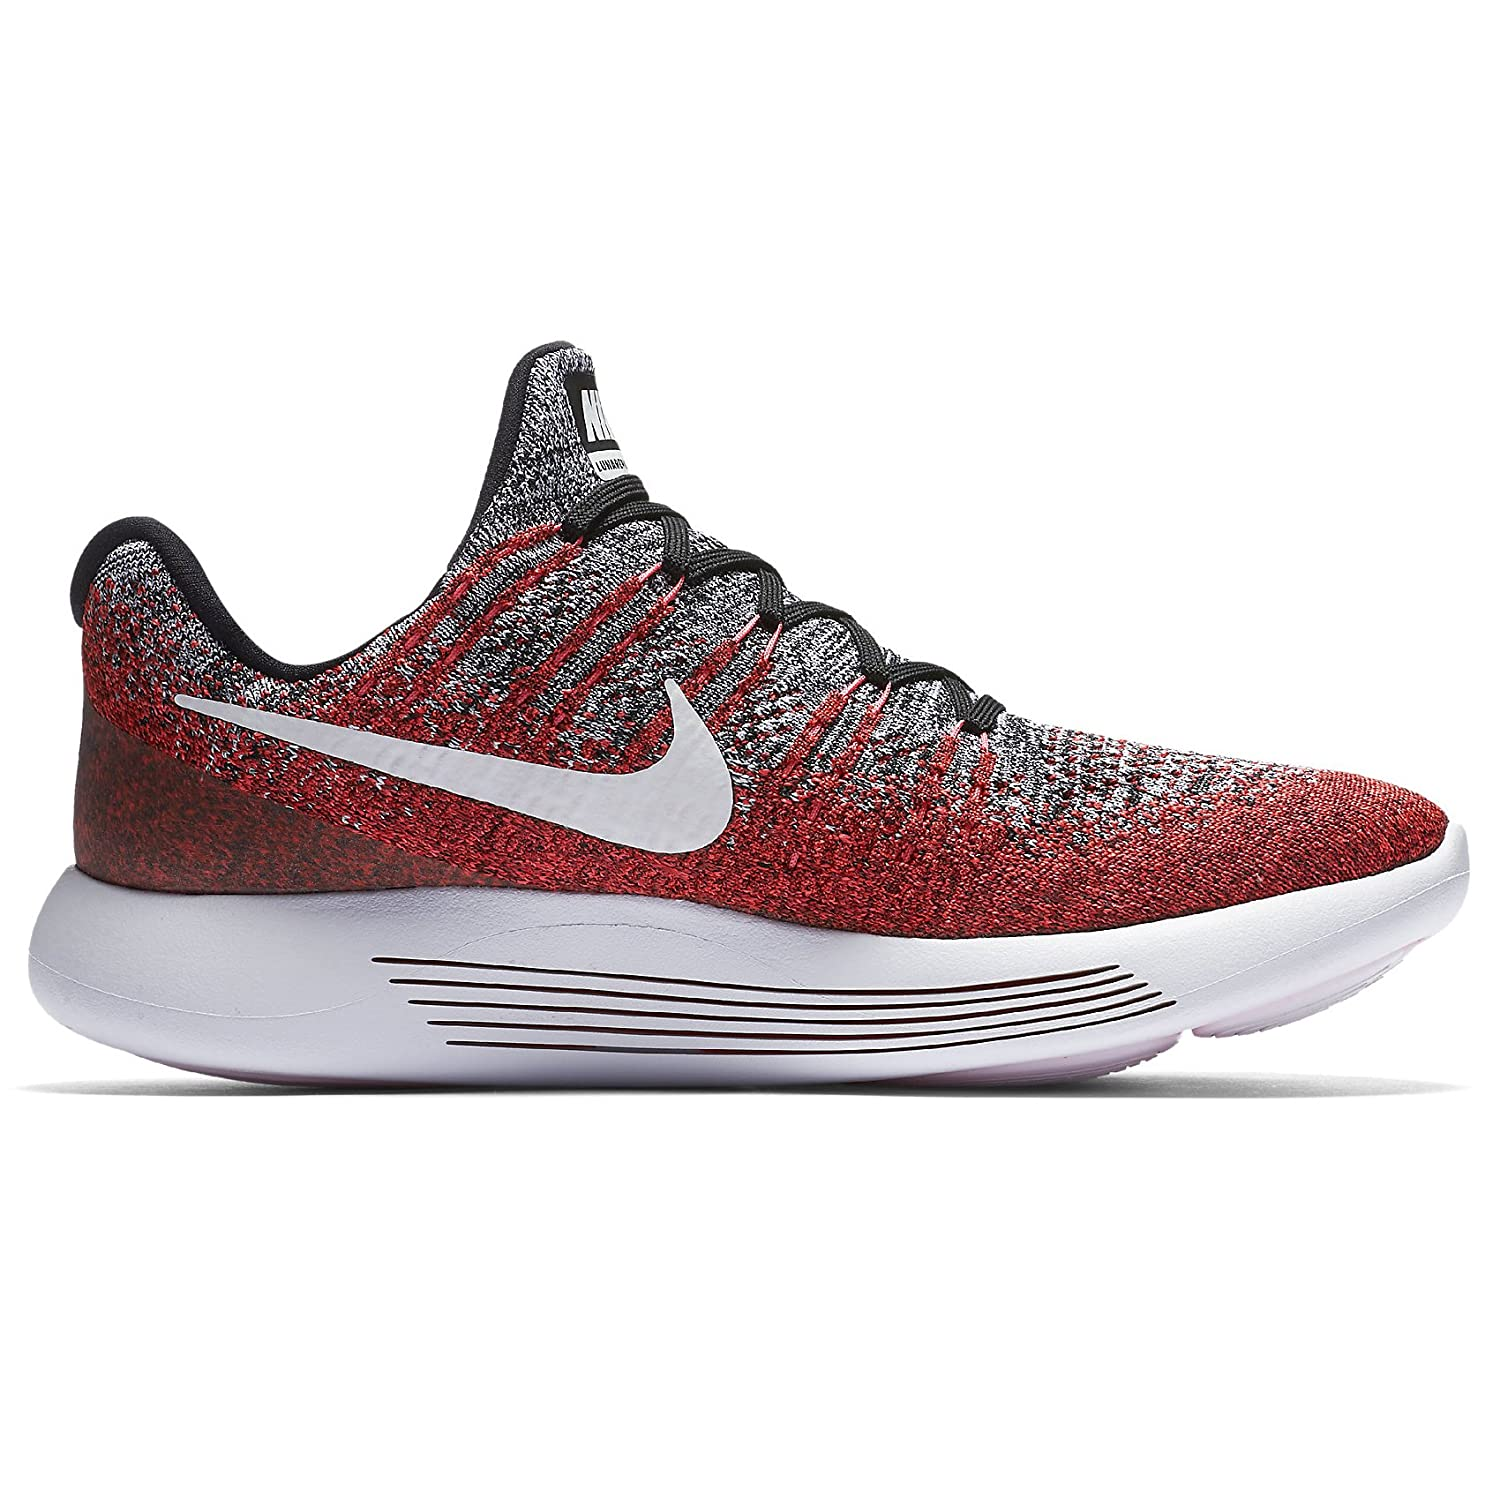 Amazon.com | Nike Lunarepic Low Flyknit 2 863779-005 Black/White/Hyper  Punch Mens Running Shoes (14) | Road Running